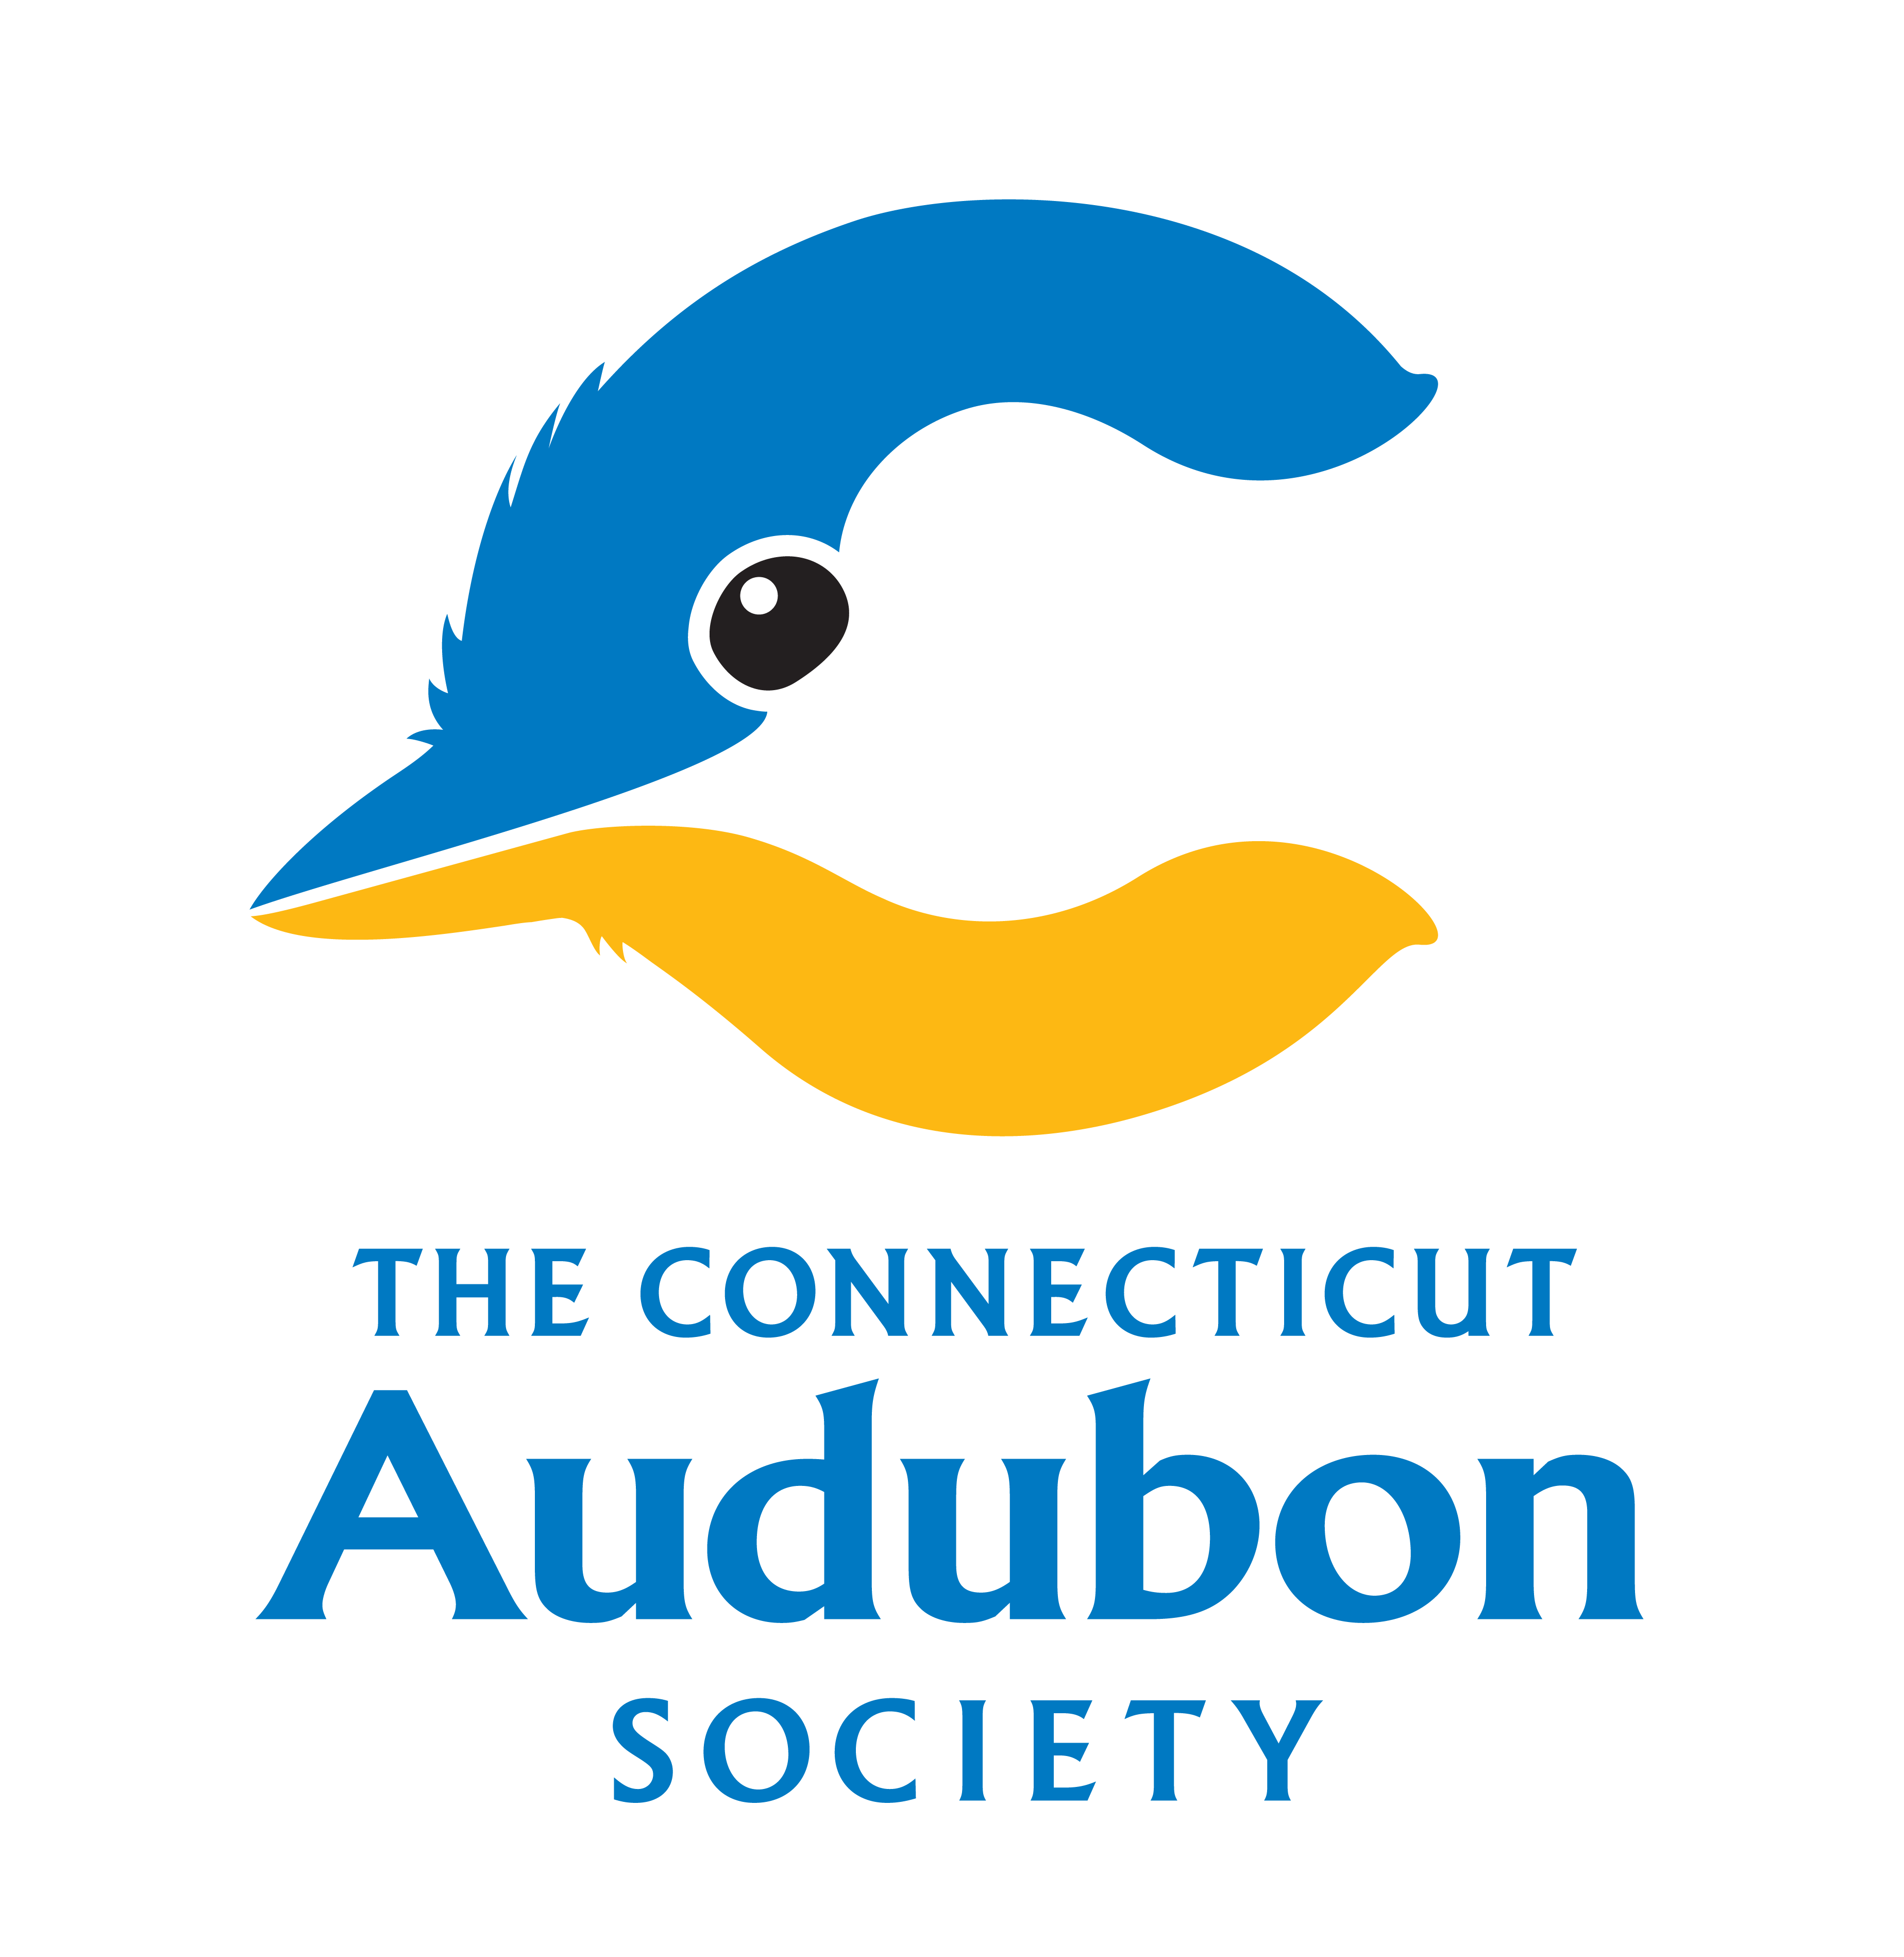 The Connecticut Audubon Society